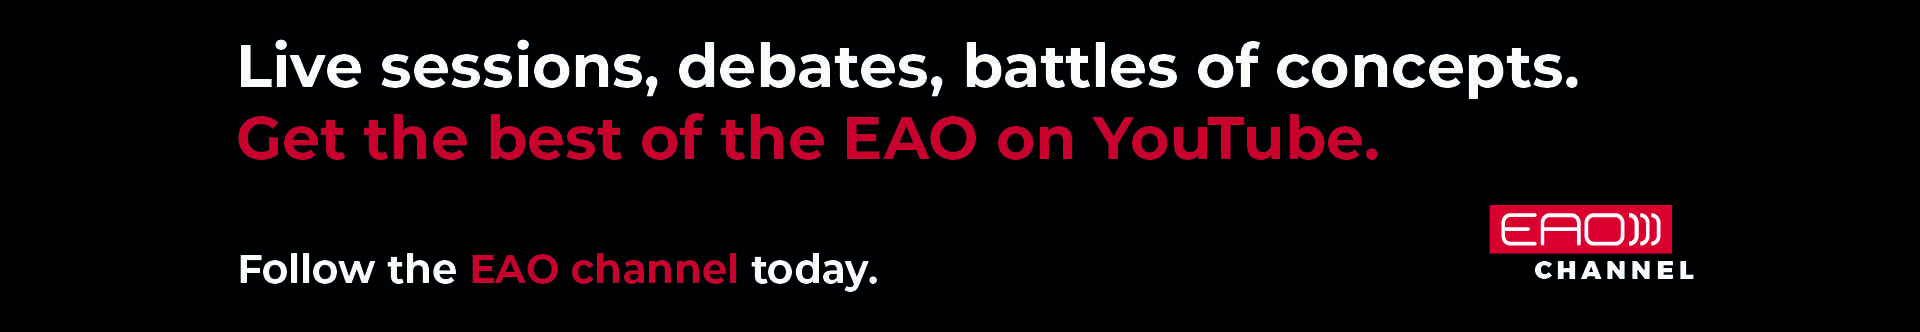 Live sessions, debates, battles of concepts. Get the best of the EAO on YouTube. Follow the EAO channel today.